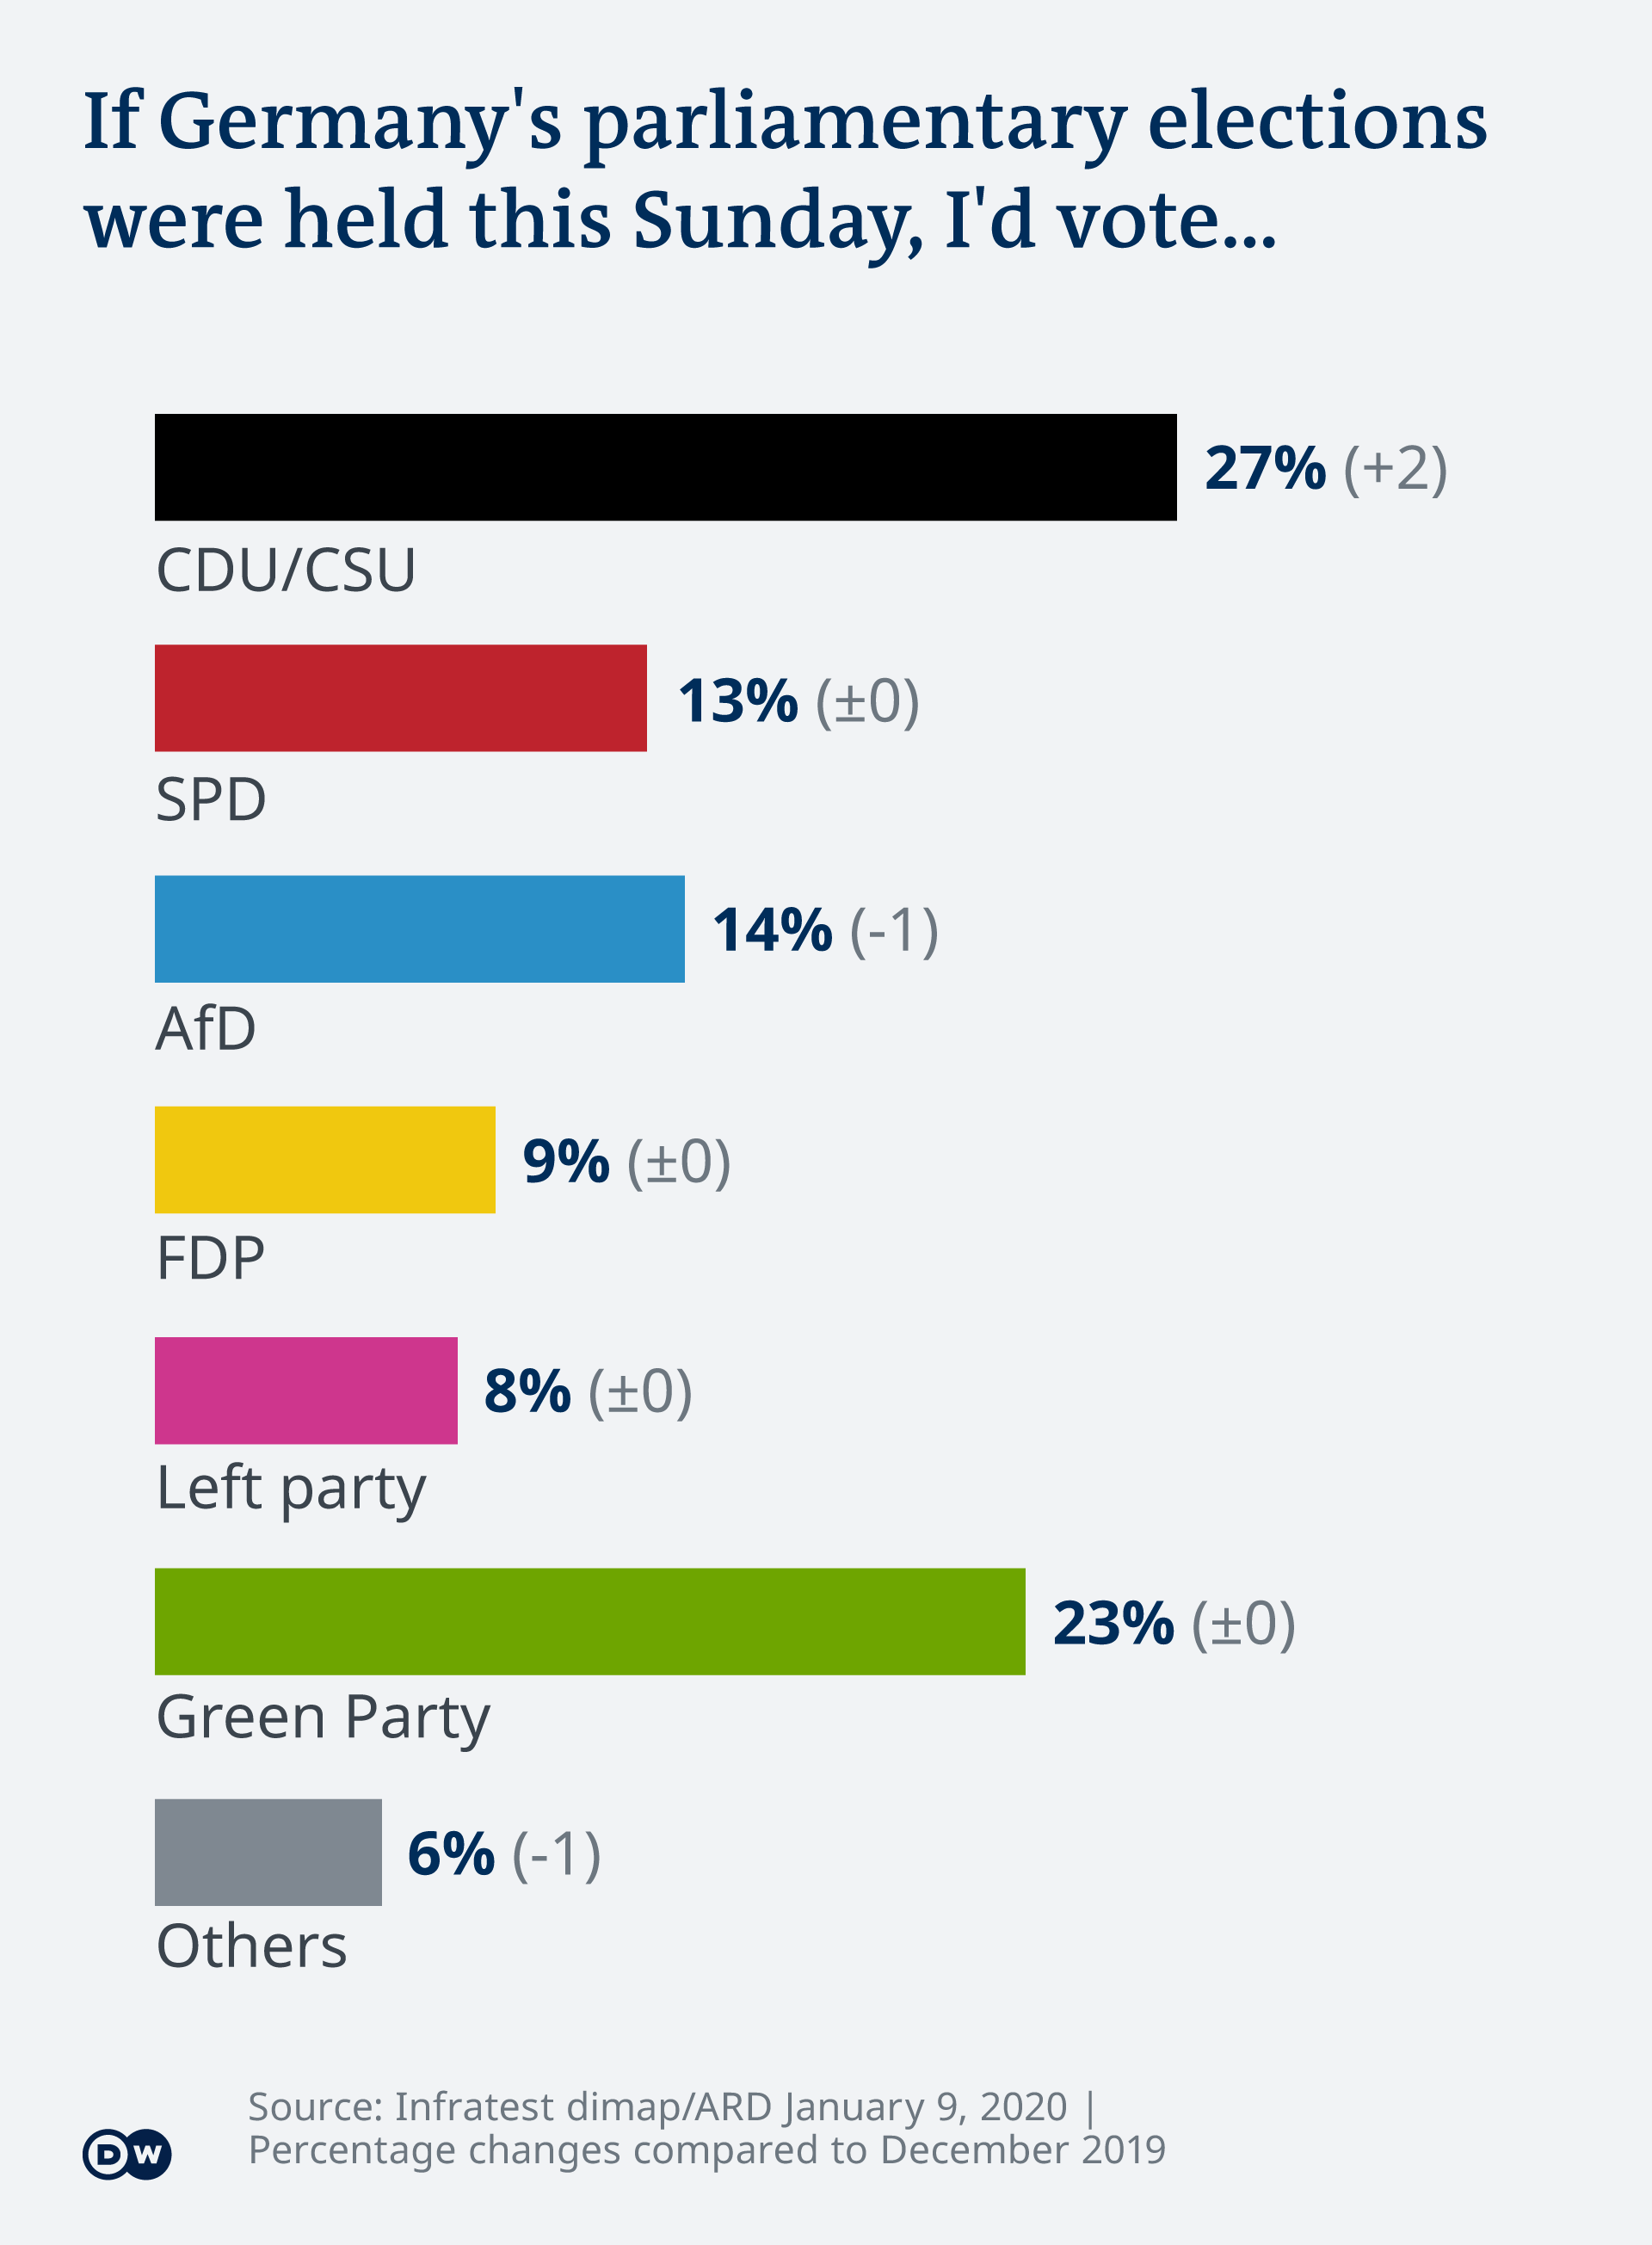 Infographic of survey responses to 'If Germany's parliamentary elections were held this Sunday, I'd vote...'